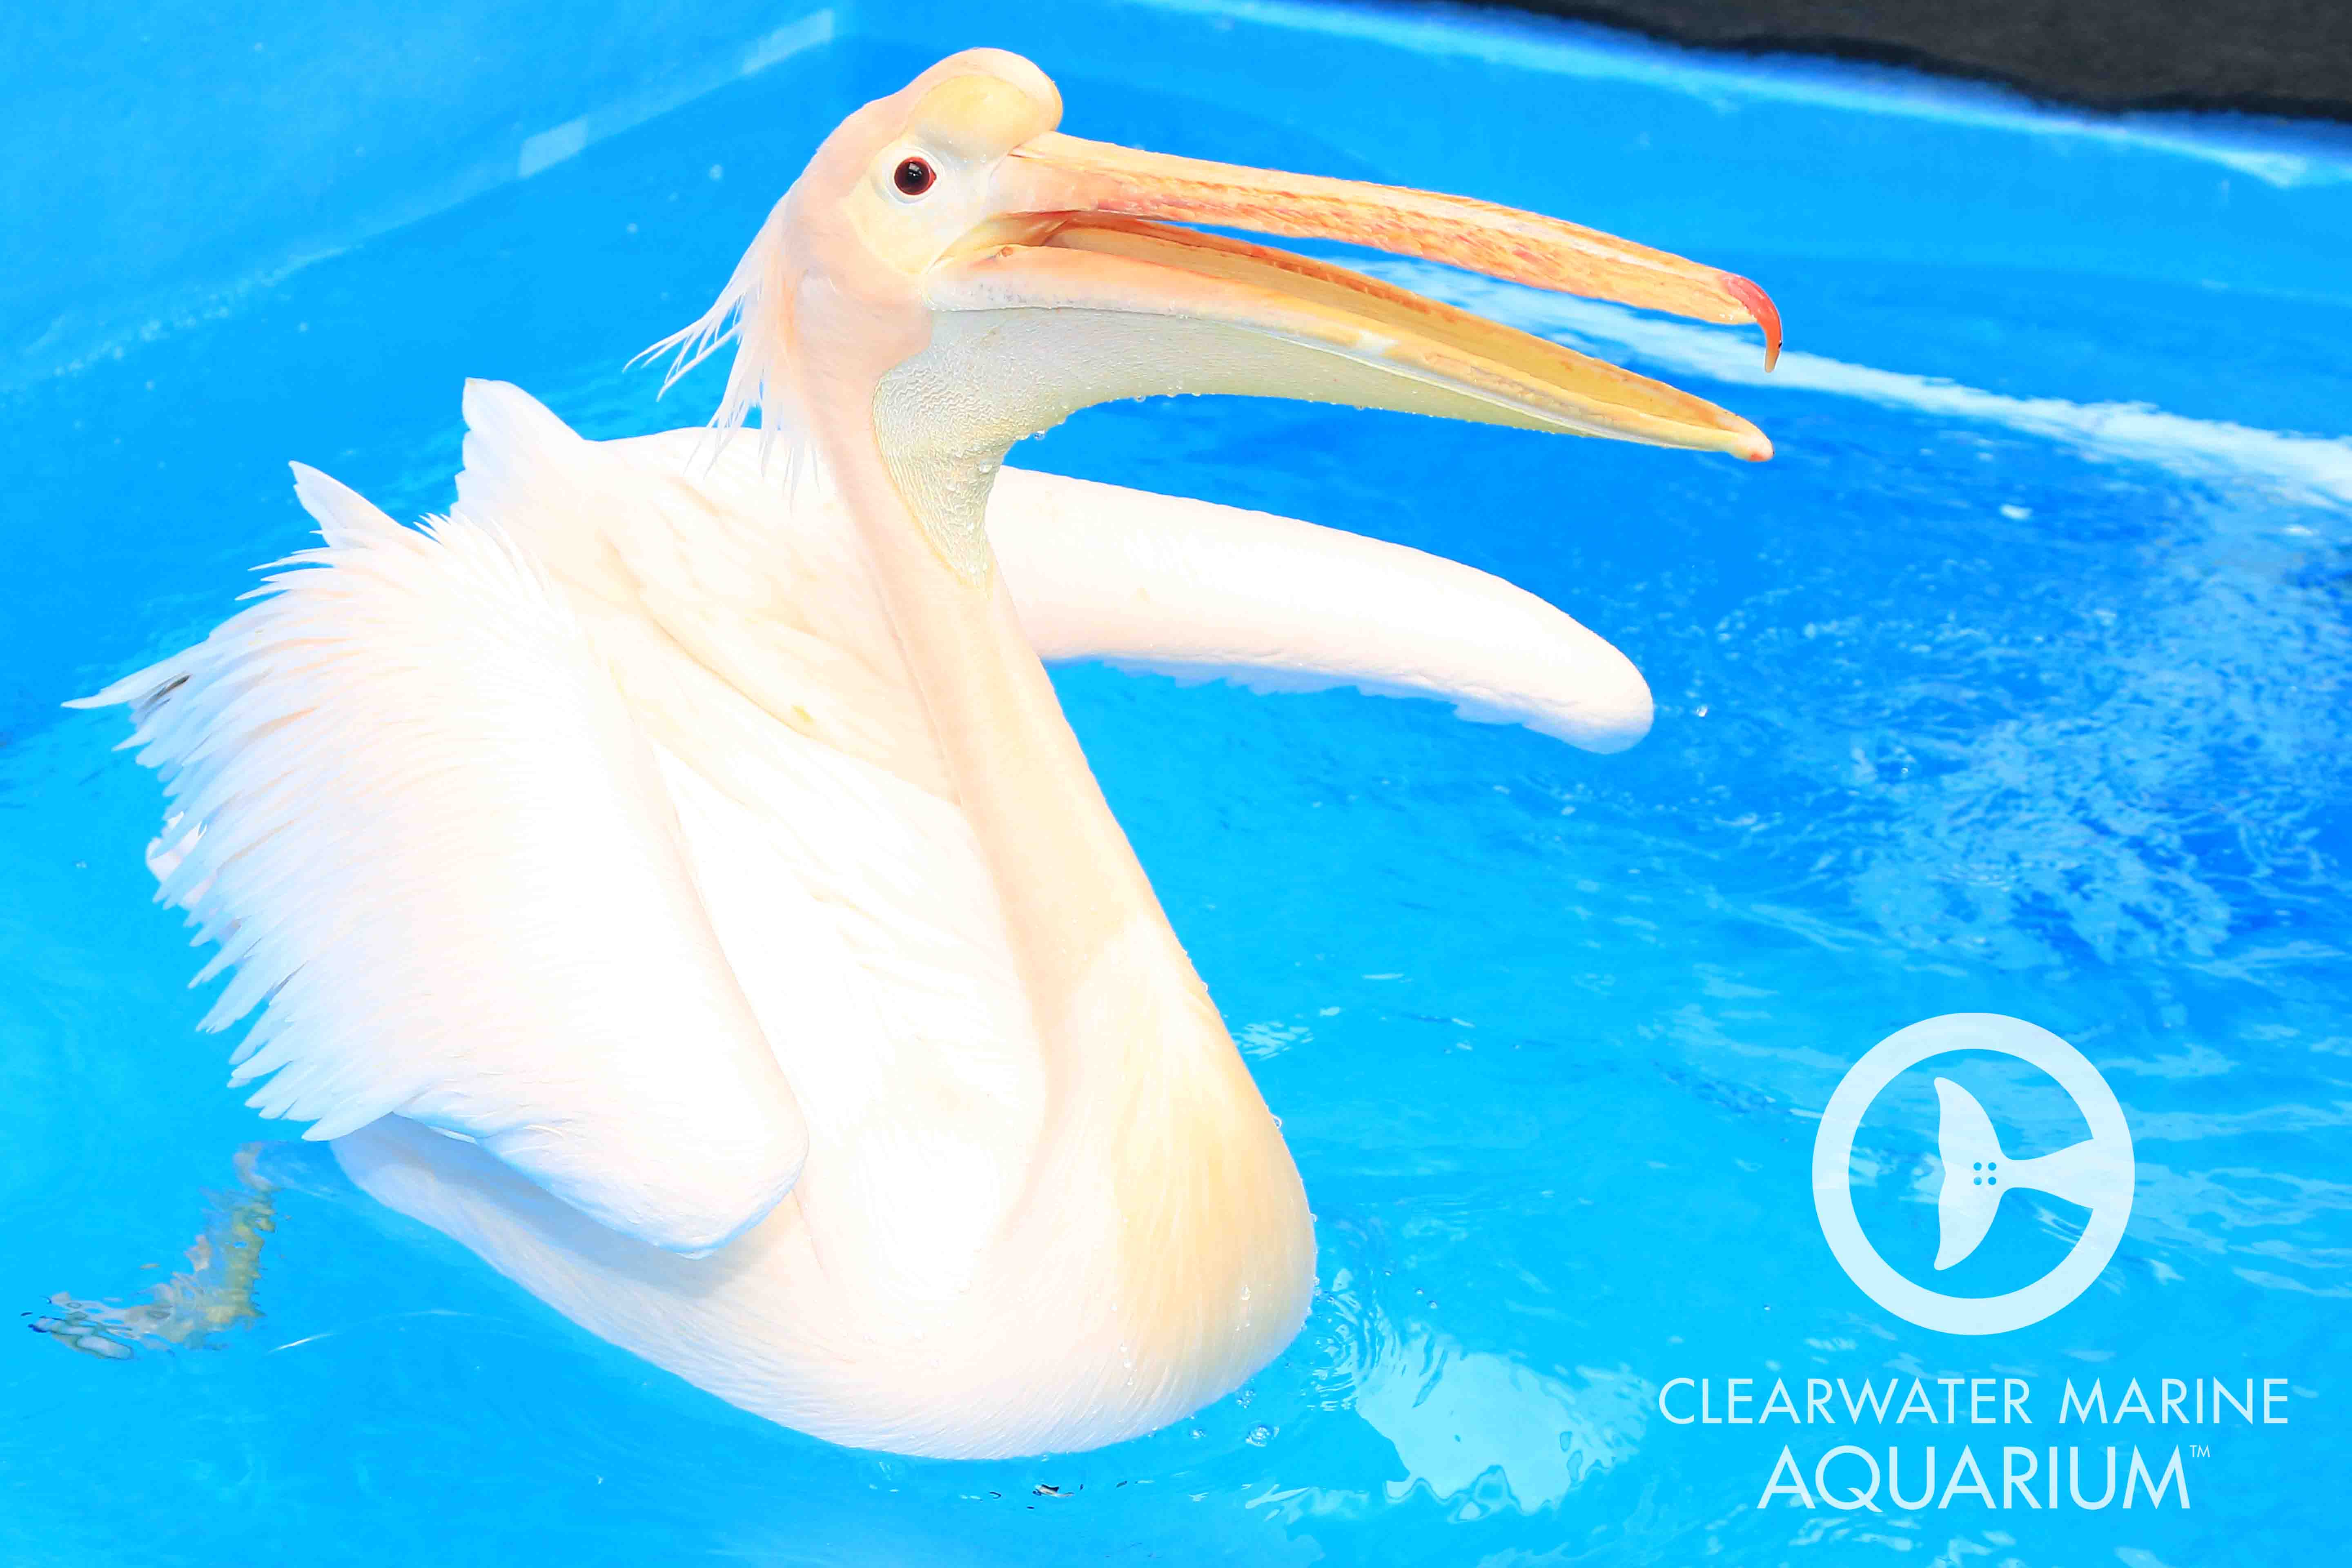 Clearwater Marine Aquarium home of Winter and Hope